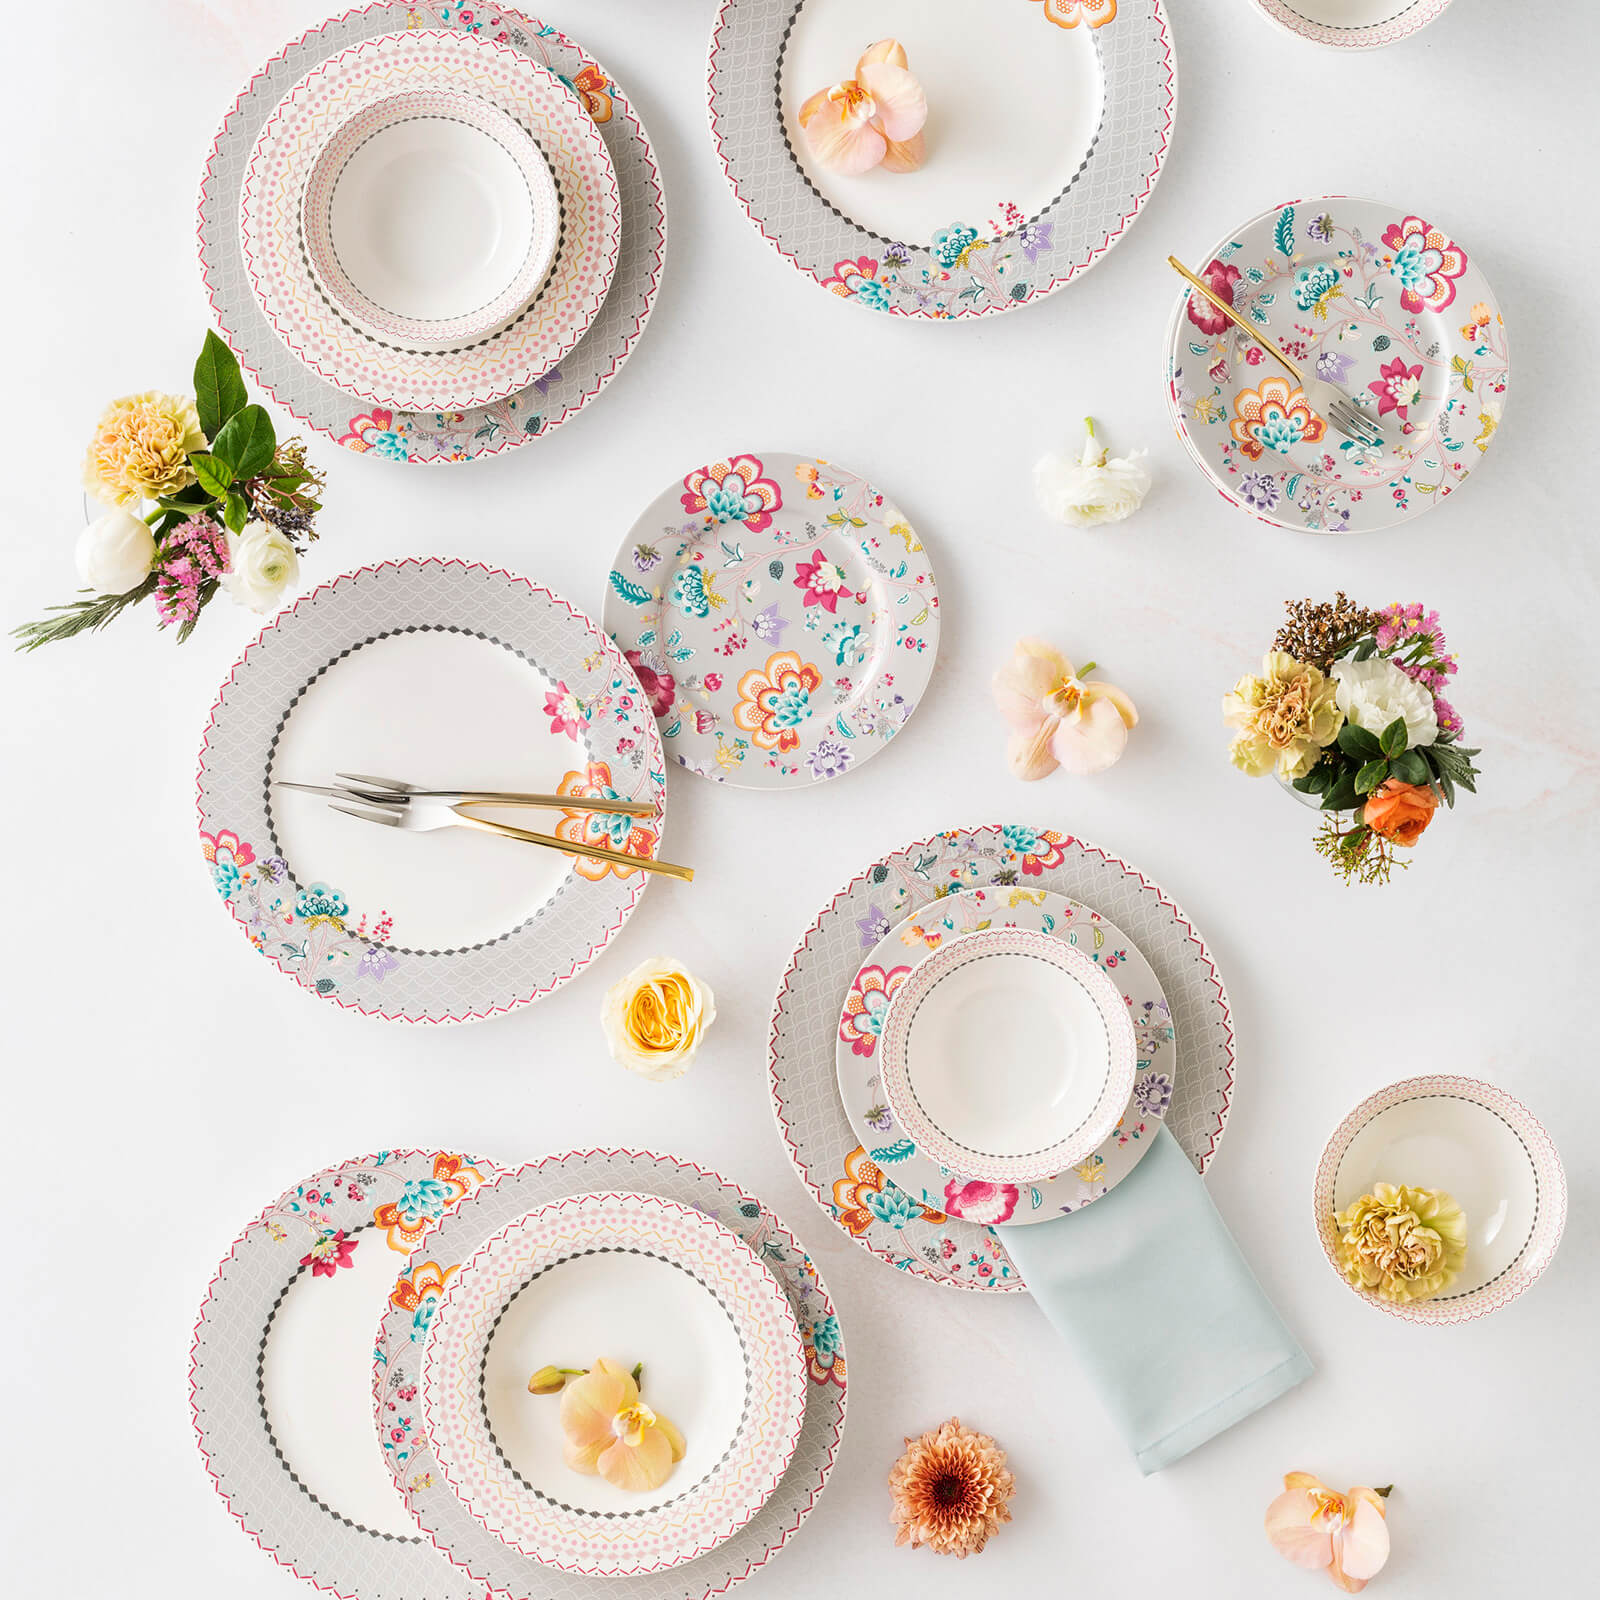 Pre-Order 50 days delivery 24 pieces May Flower 6-Person Dinner Set 153.03.07.9969 -  اطلب مسبقًا 50 يومًا تسليم 24 قطعة طقم عشاء مايو فلاور 6 أشخاص - Shop Online Furniture and Home Decor Store in Dubai, UAE at ebarza